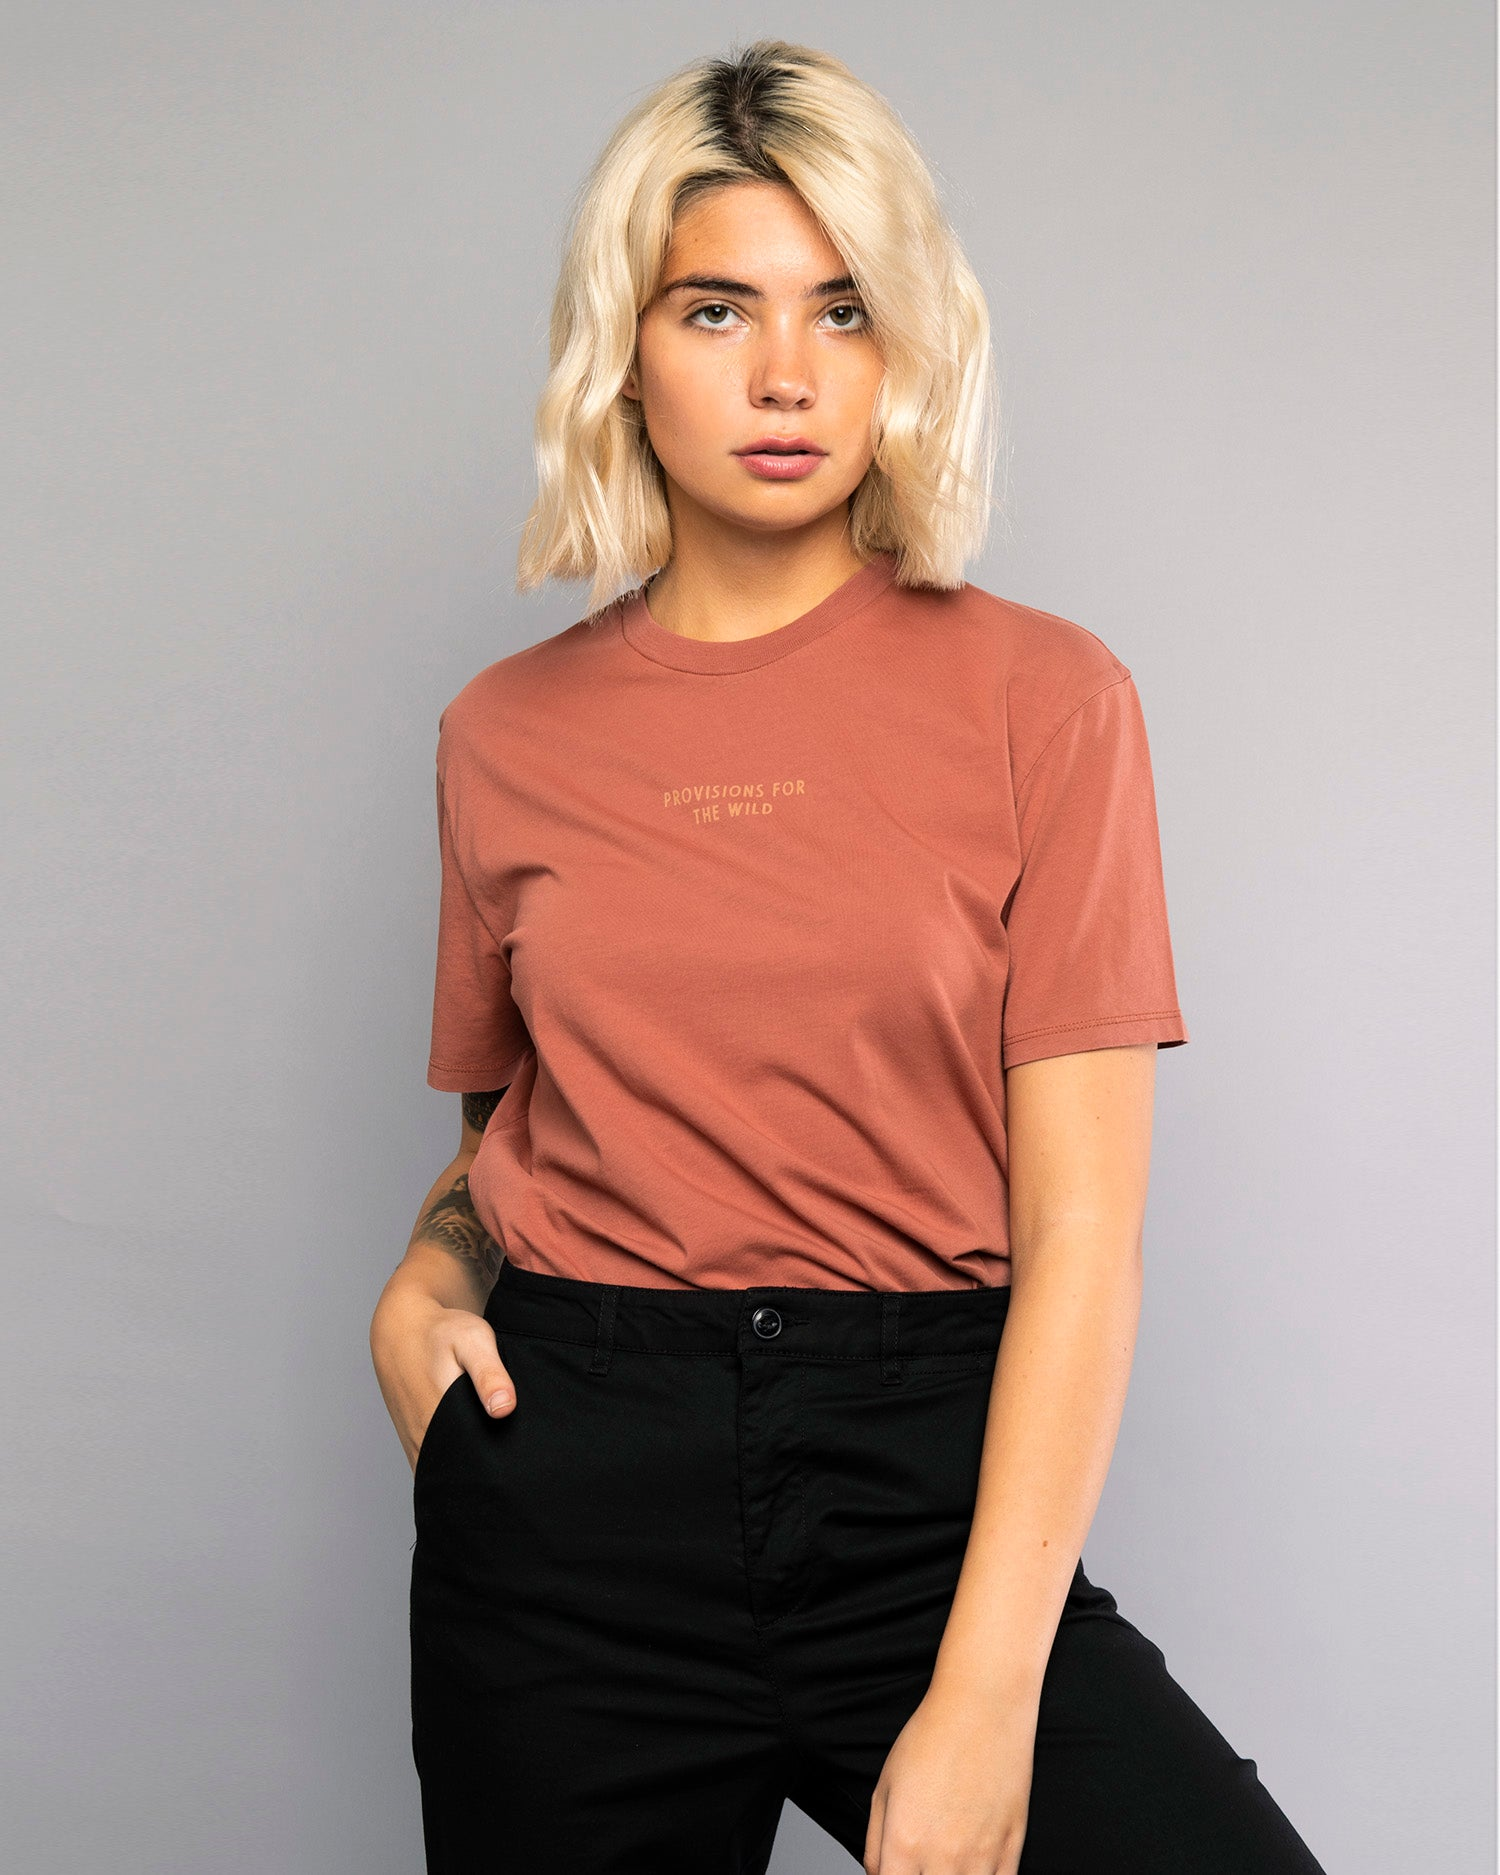 Womens Provisions For The Wild Burnt Red Tshirt